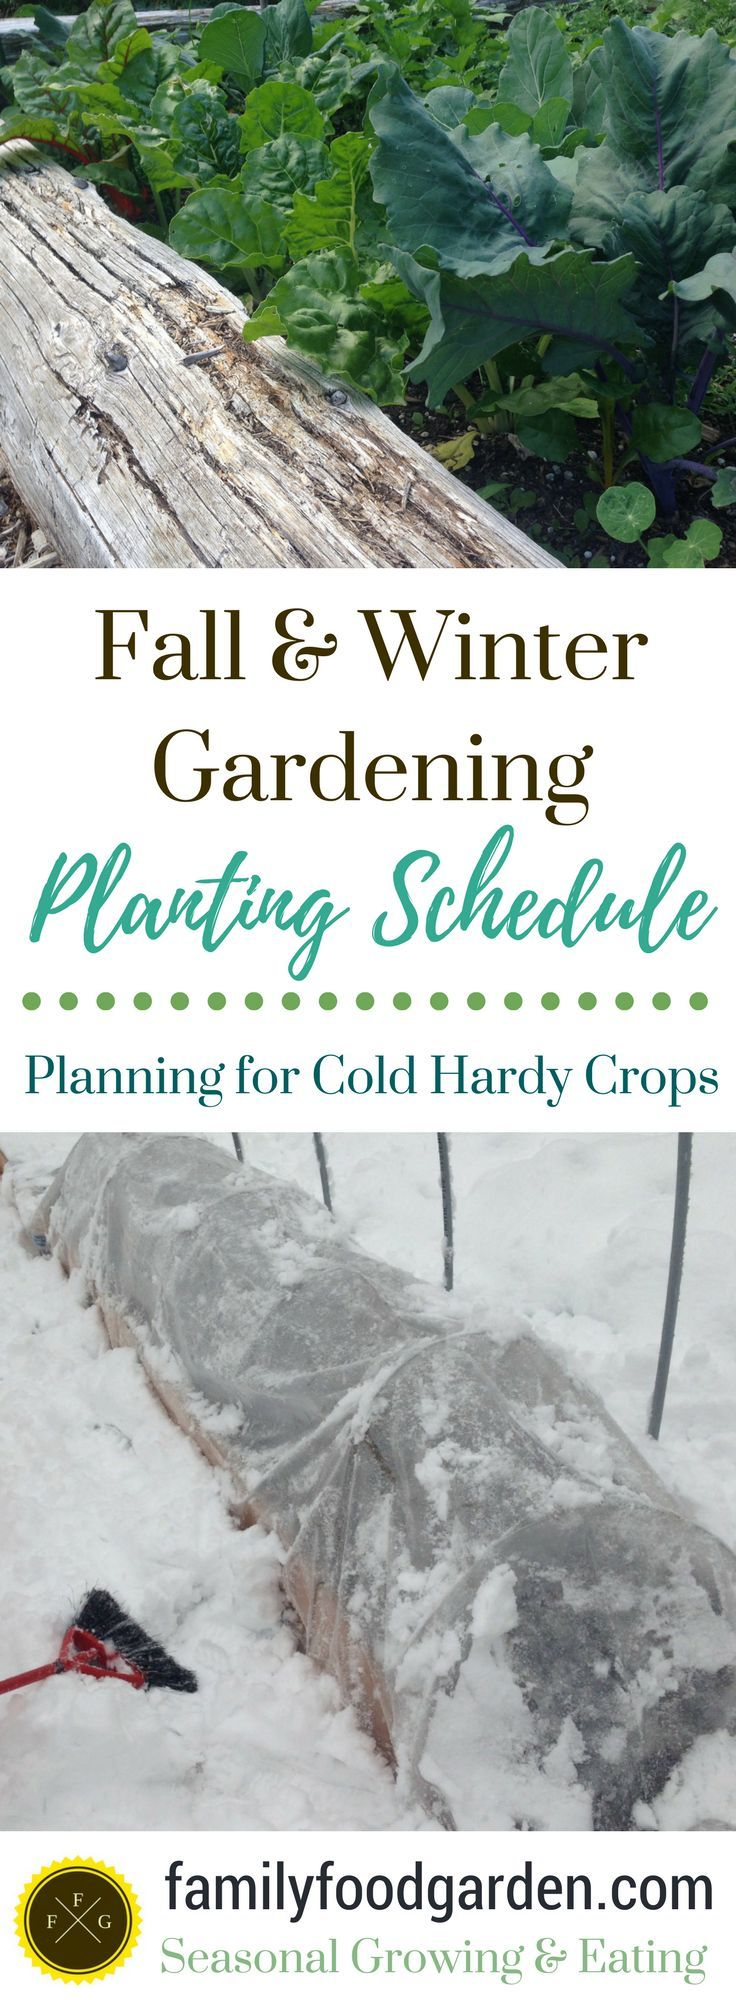 Ultimate Guide to Fall & Winter Gardening